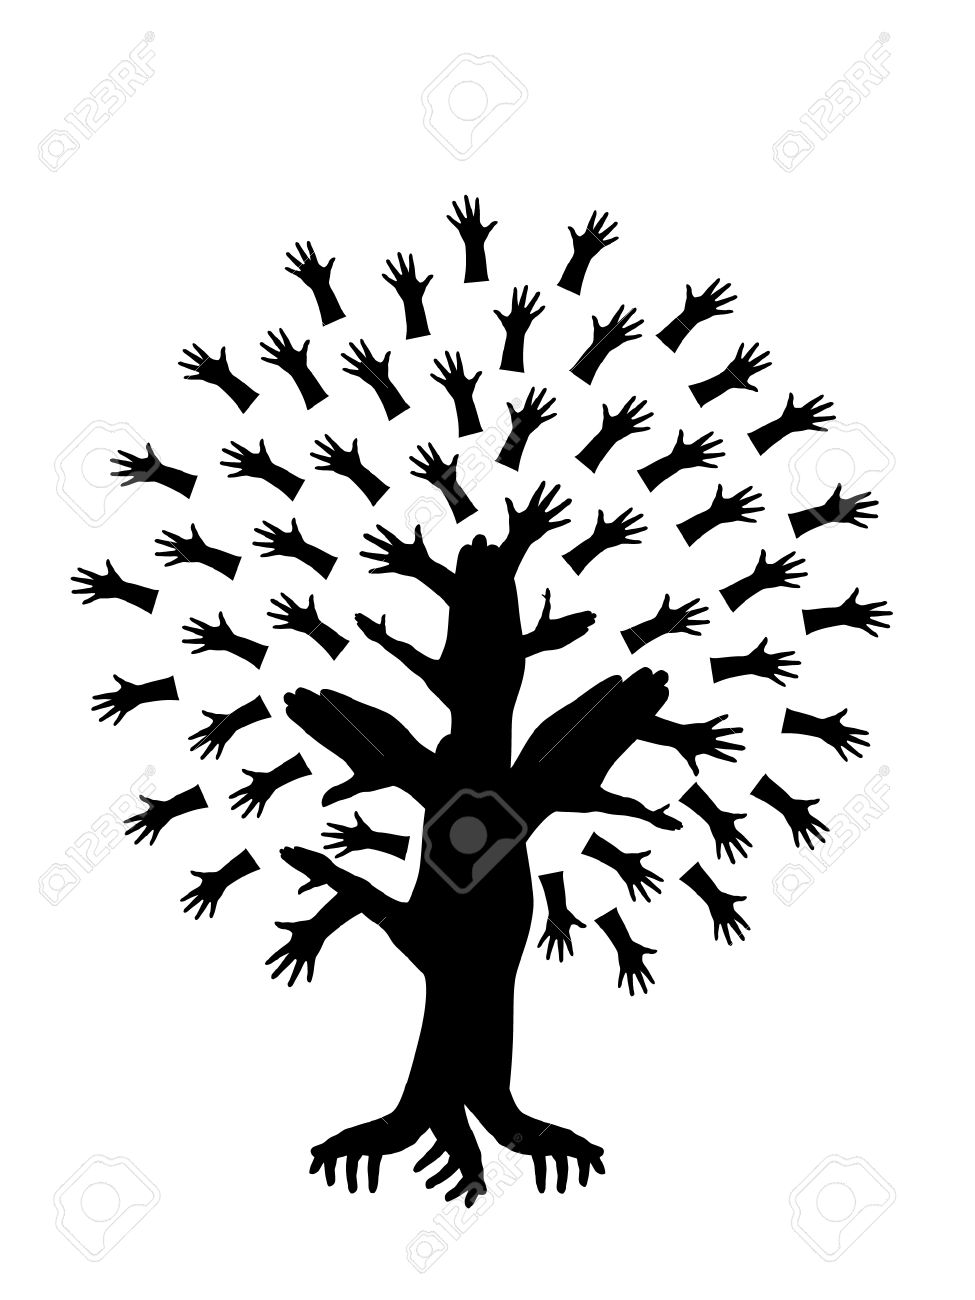 abstract hand tree symbol of diversity royalty free cliparts rh 123rf com Multicultural Clip Art Multicultural Clip Art